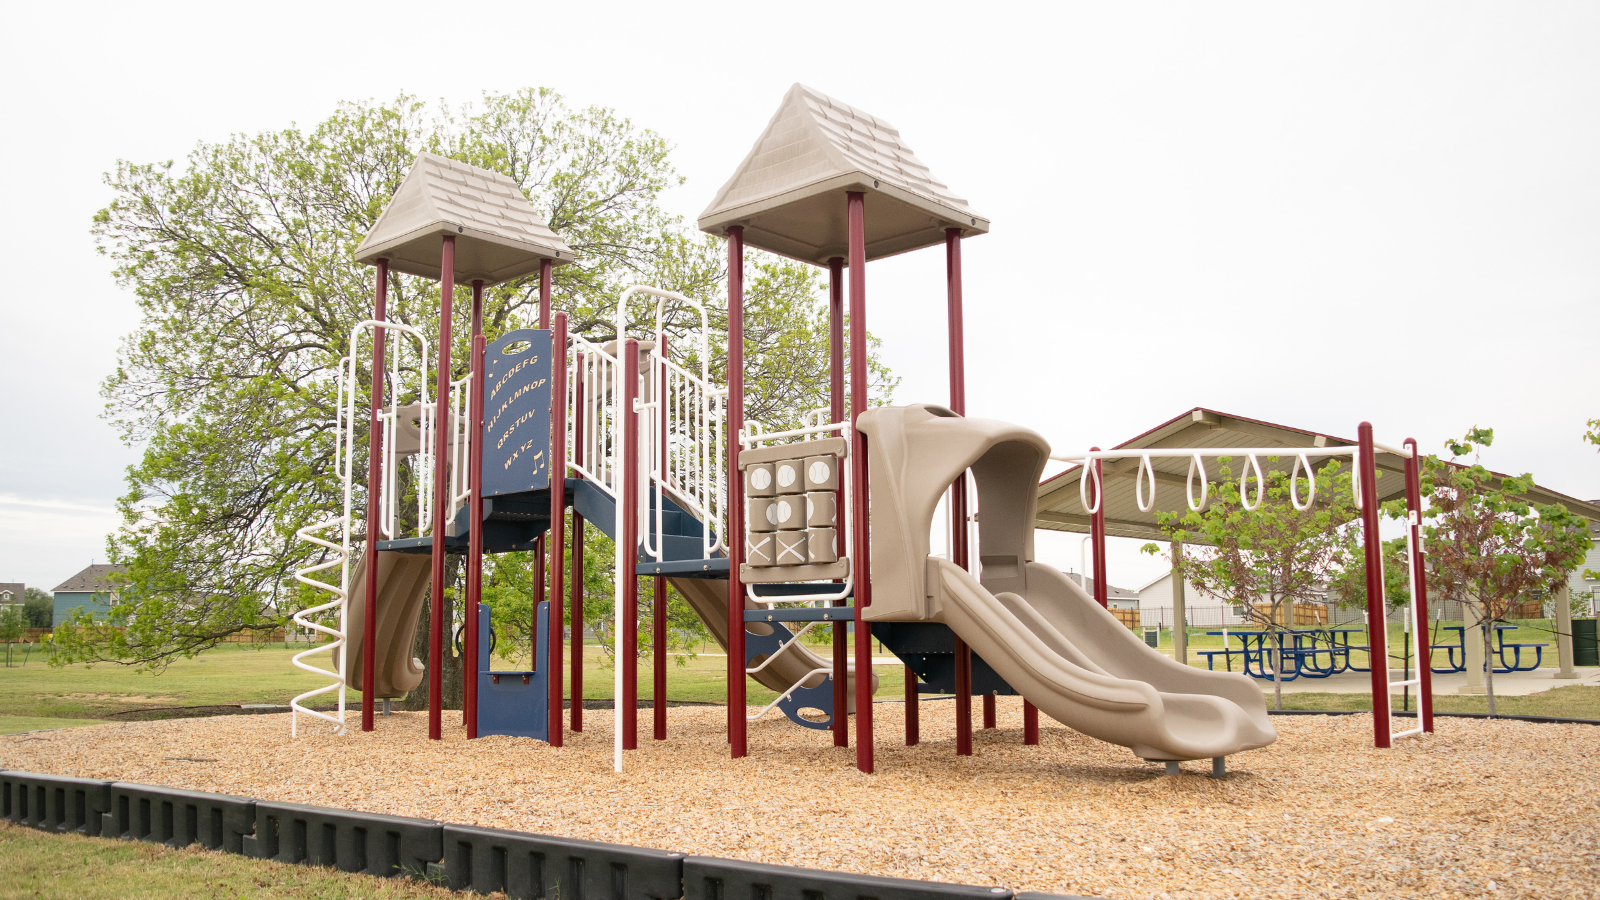 Playscape at Stillwater Park in Georgetown, tX